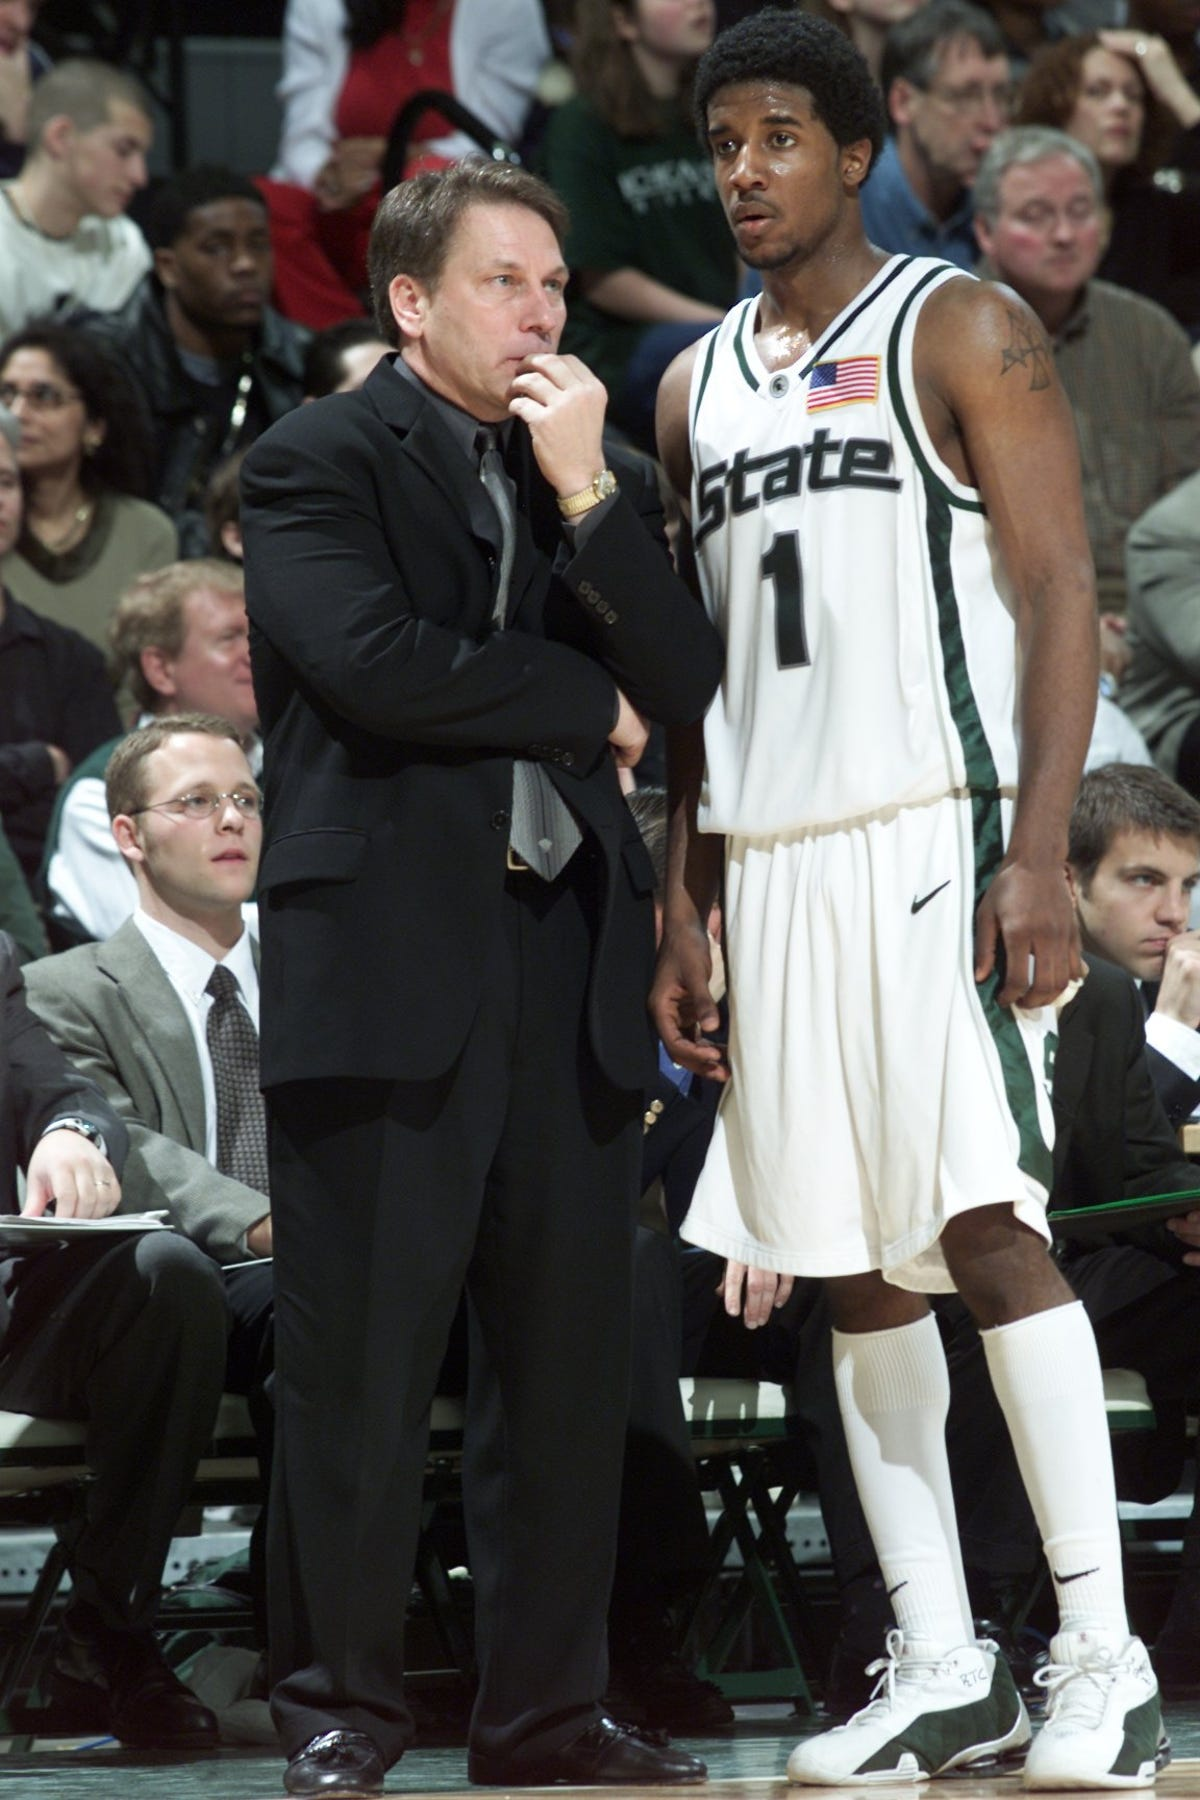 Couch: Ex-Michigan State guard Marcus Taylor at peace with basketball